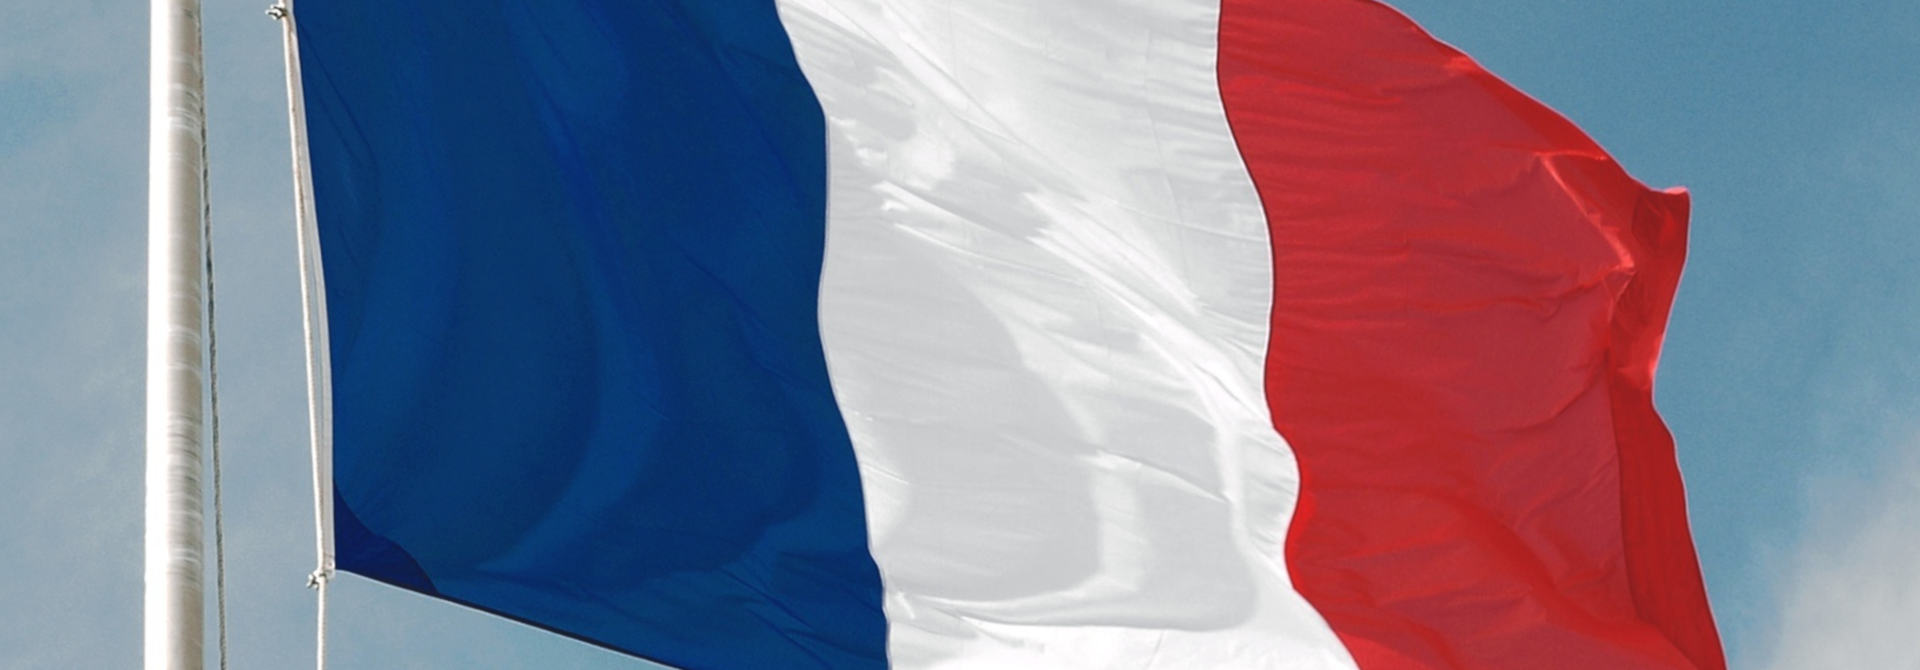 https://www.mhe-sme.org/wp-content/uploads/2018/08/French-Flag.png